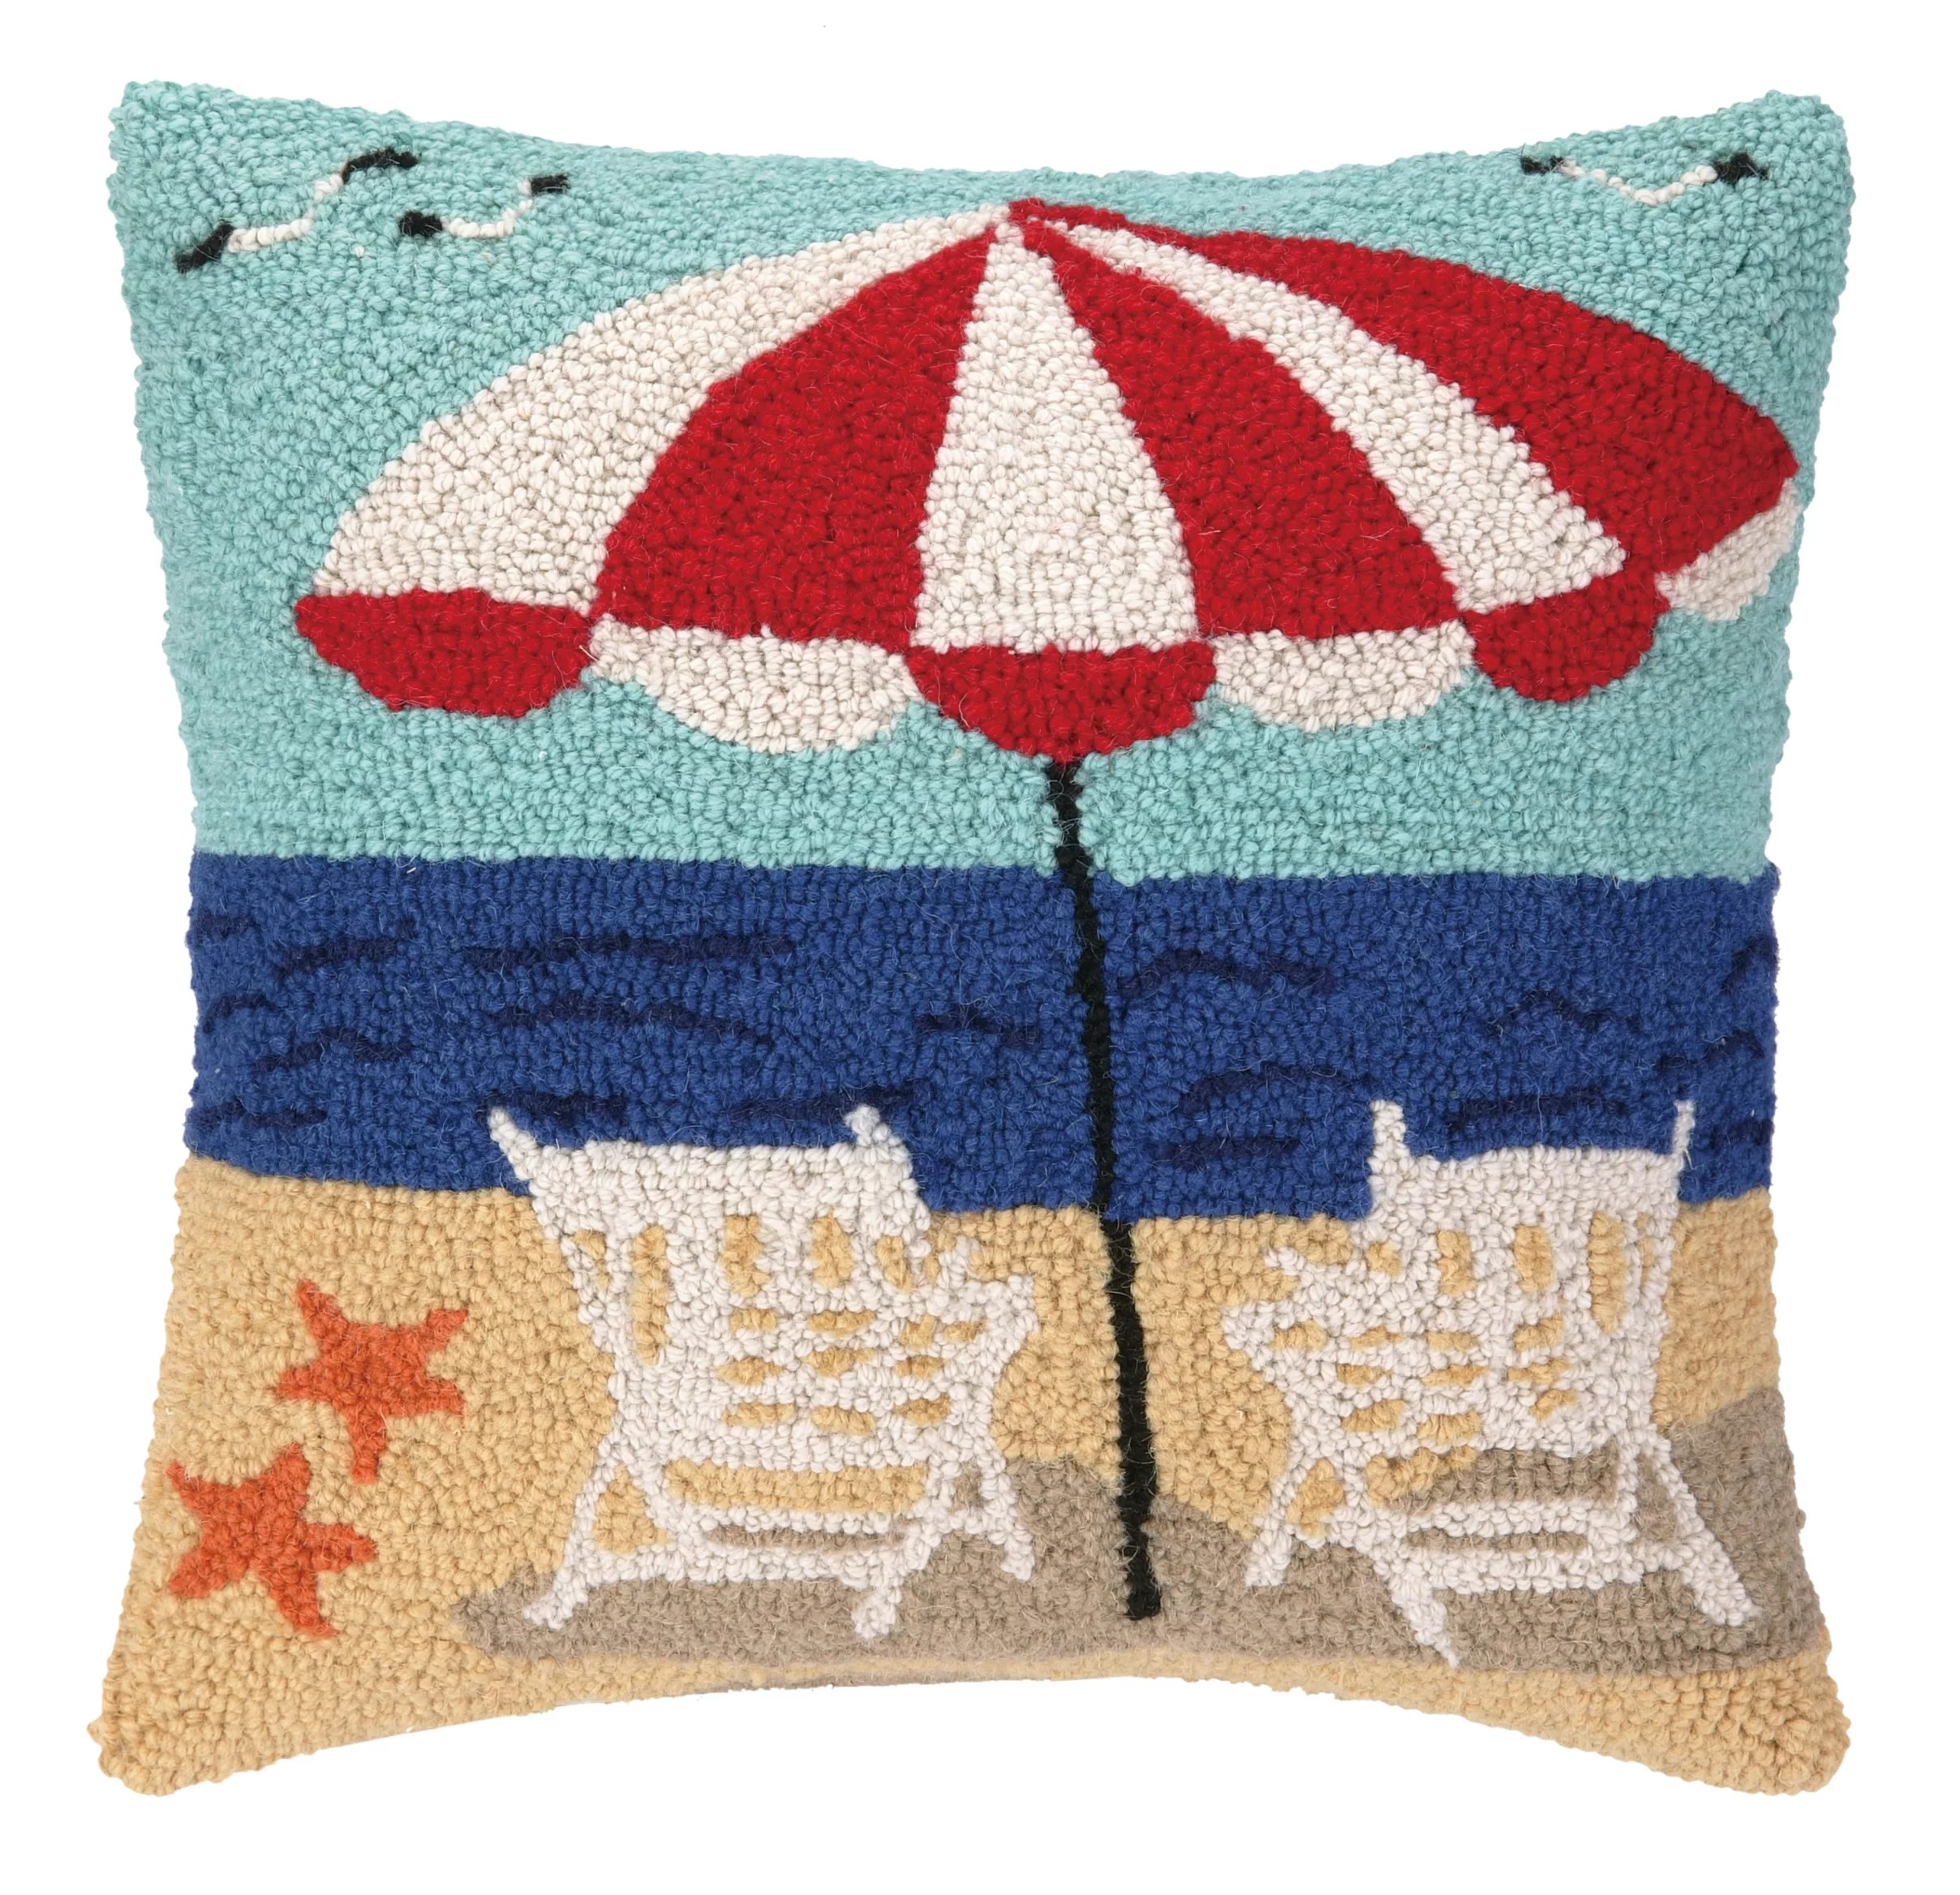 Nautical Sofa Throws Nautical Hook Beach Getaway Throw Pillow